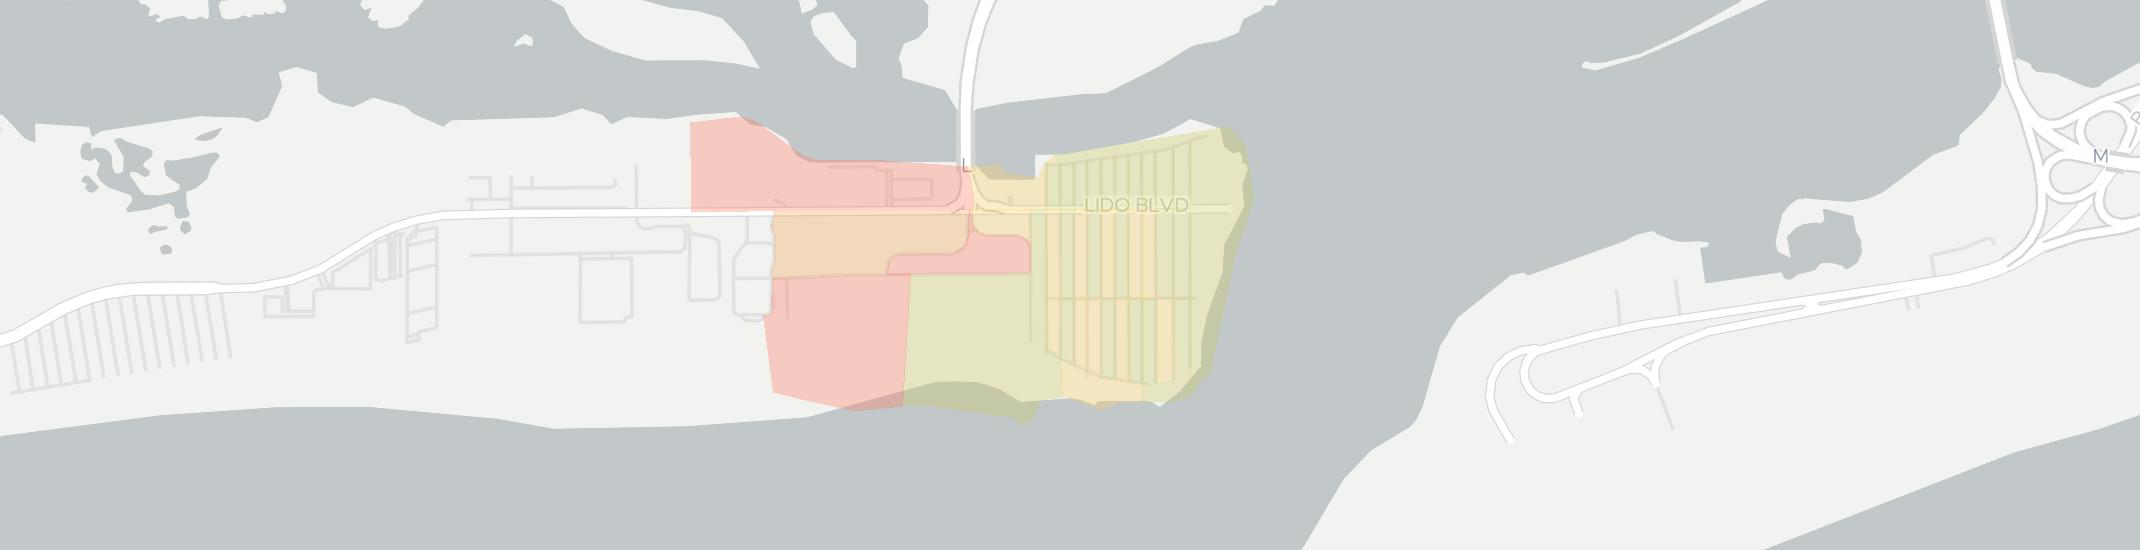 Point Lookout Internet Competition Map. Click for interactive map.